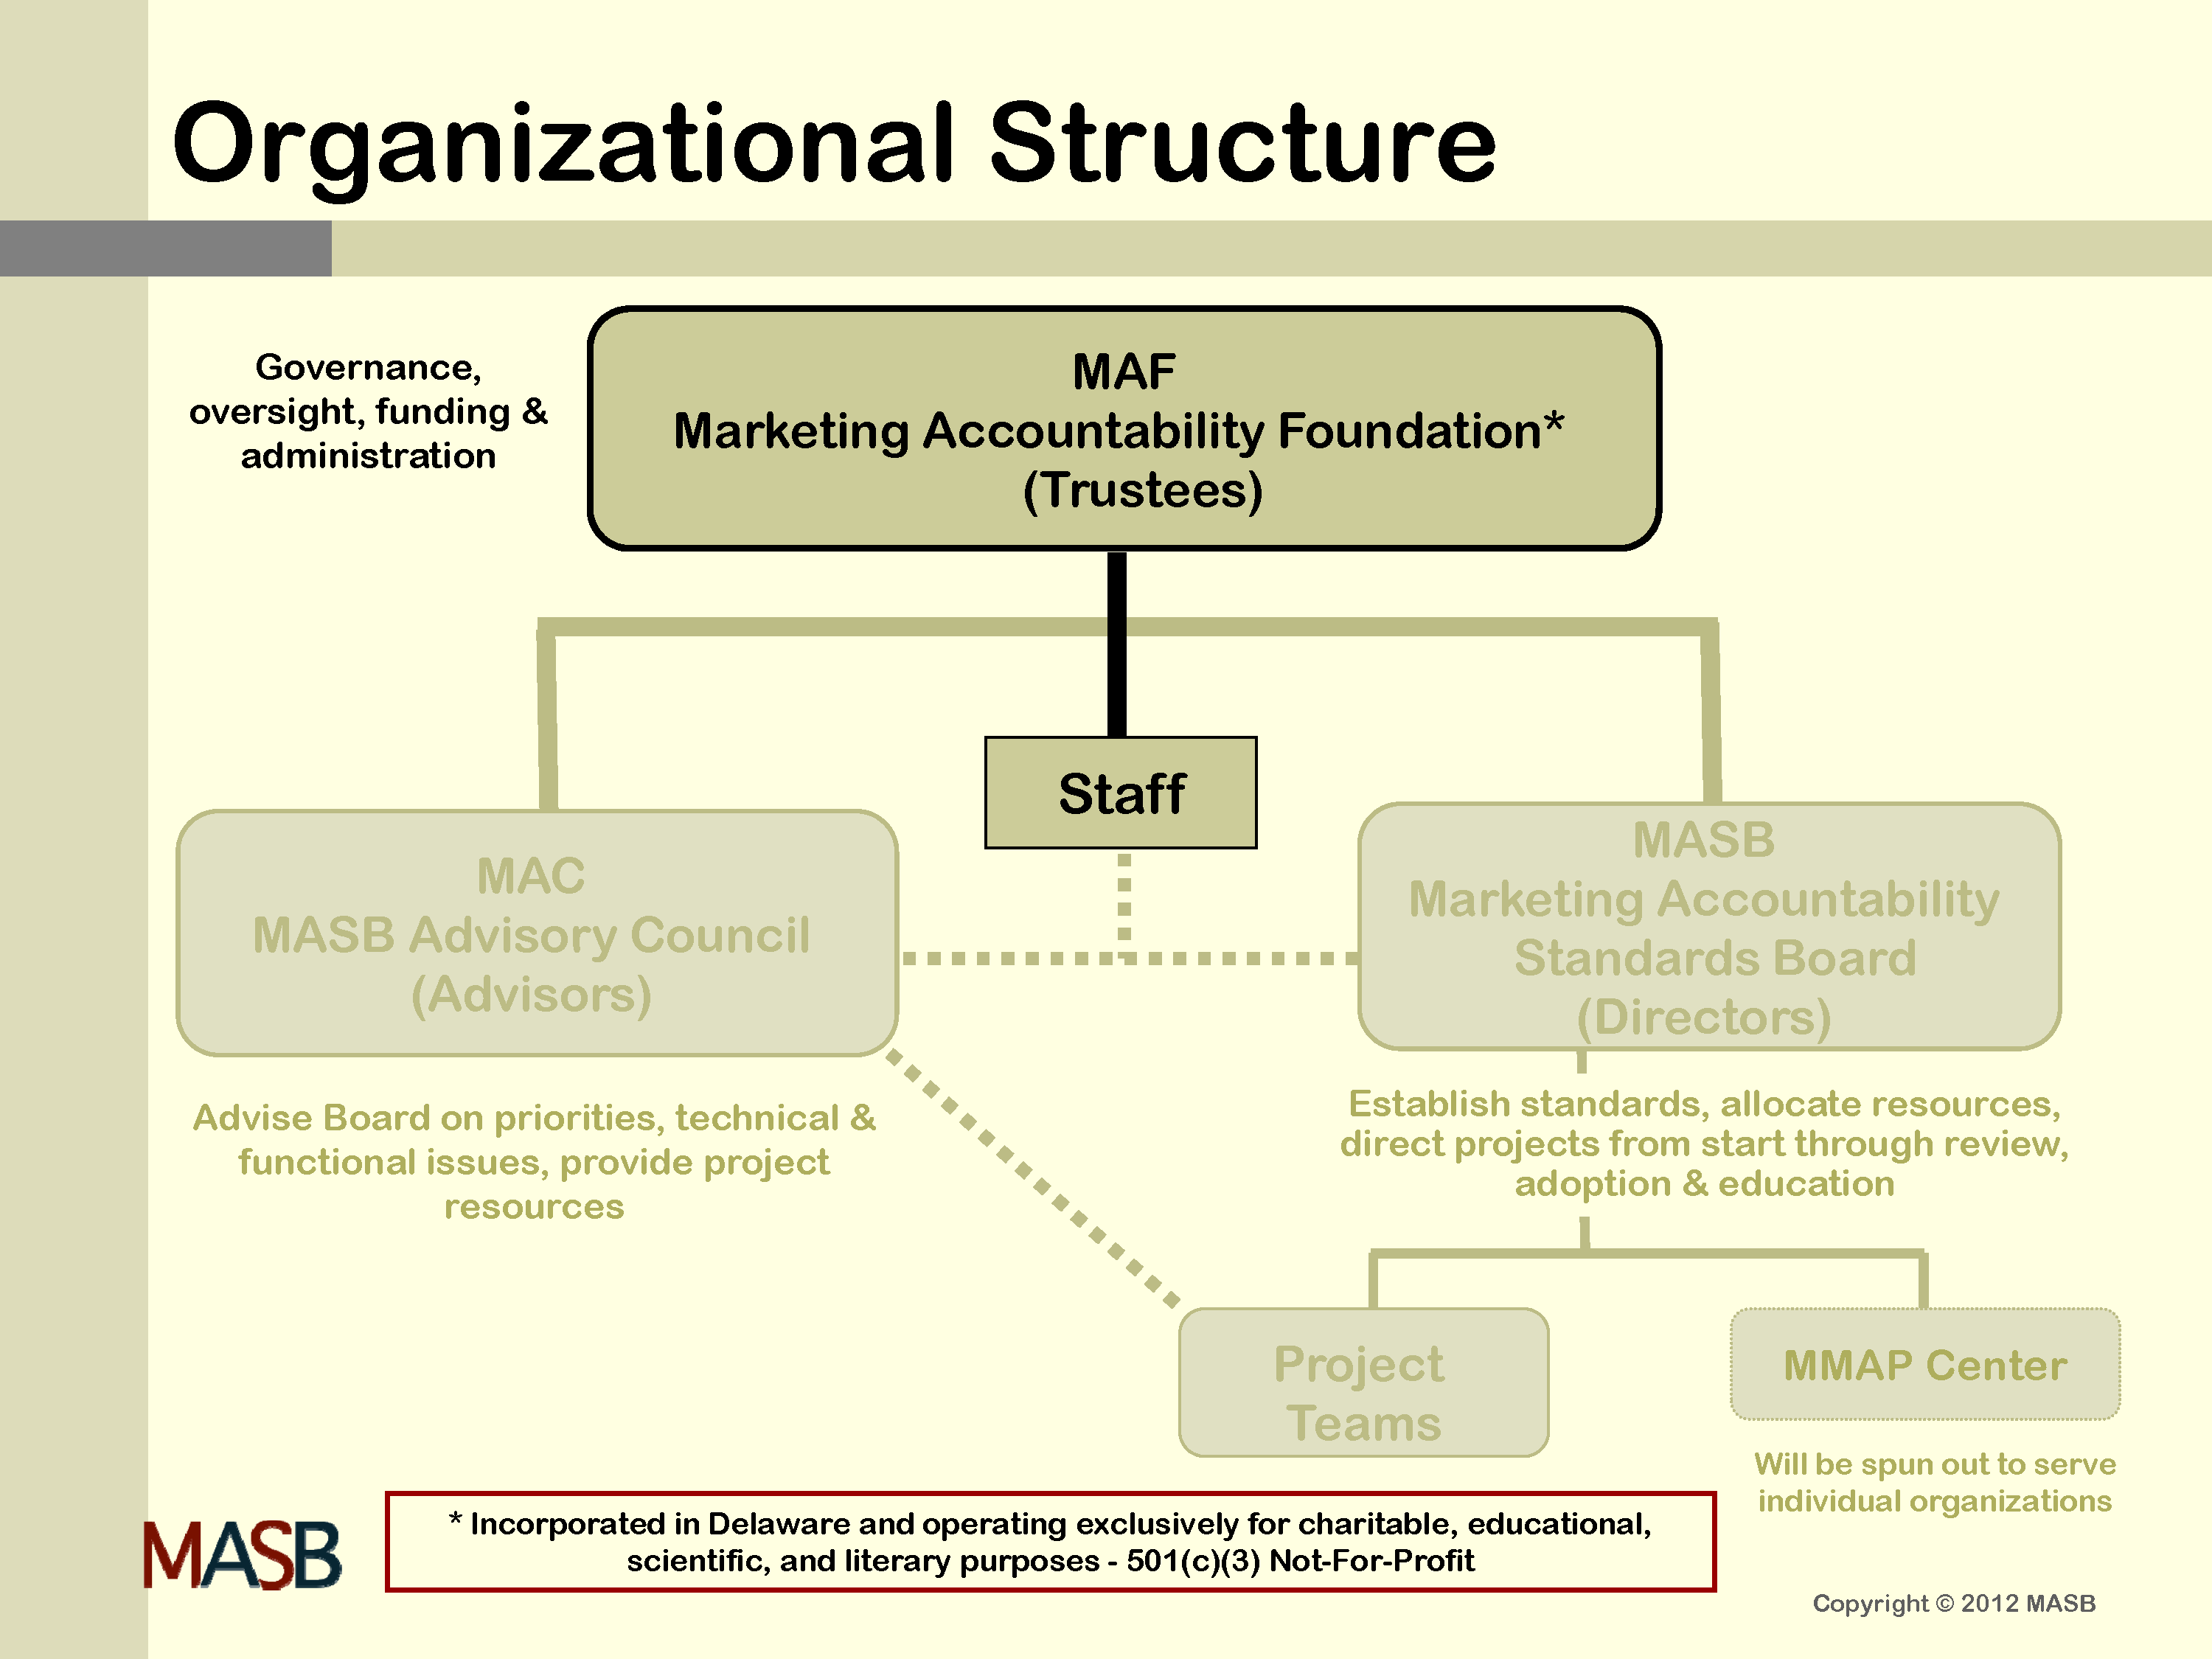 MAF Organizational Structure